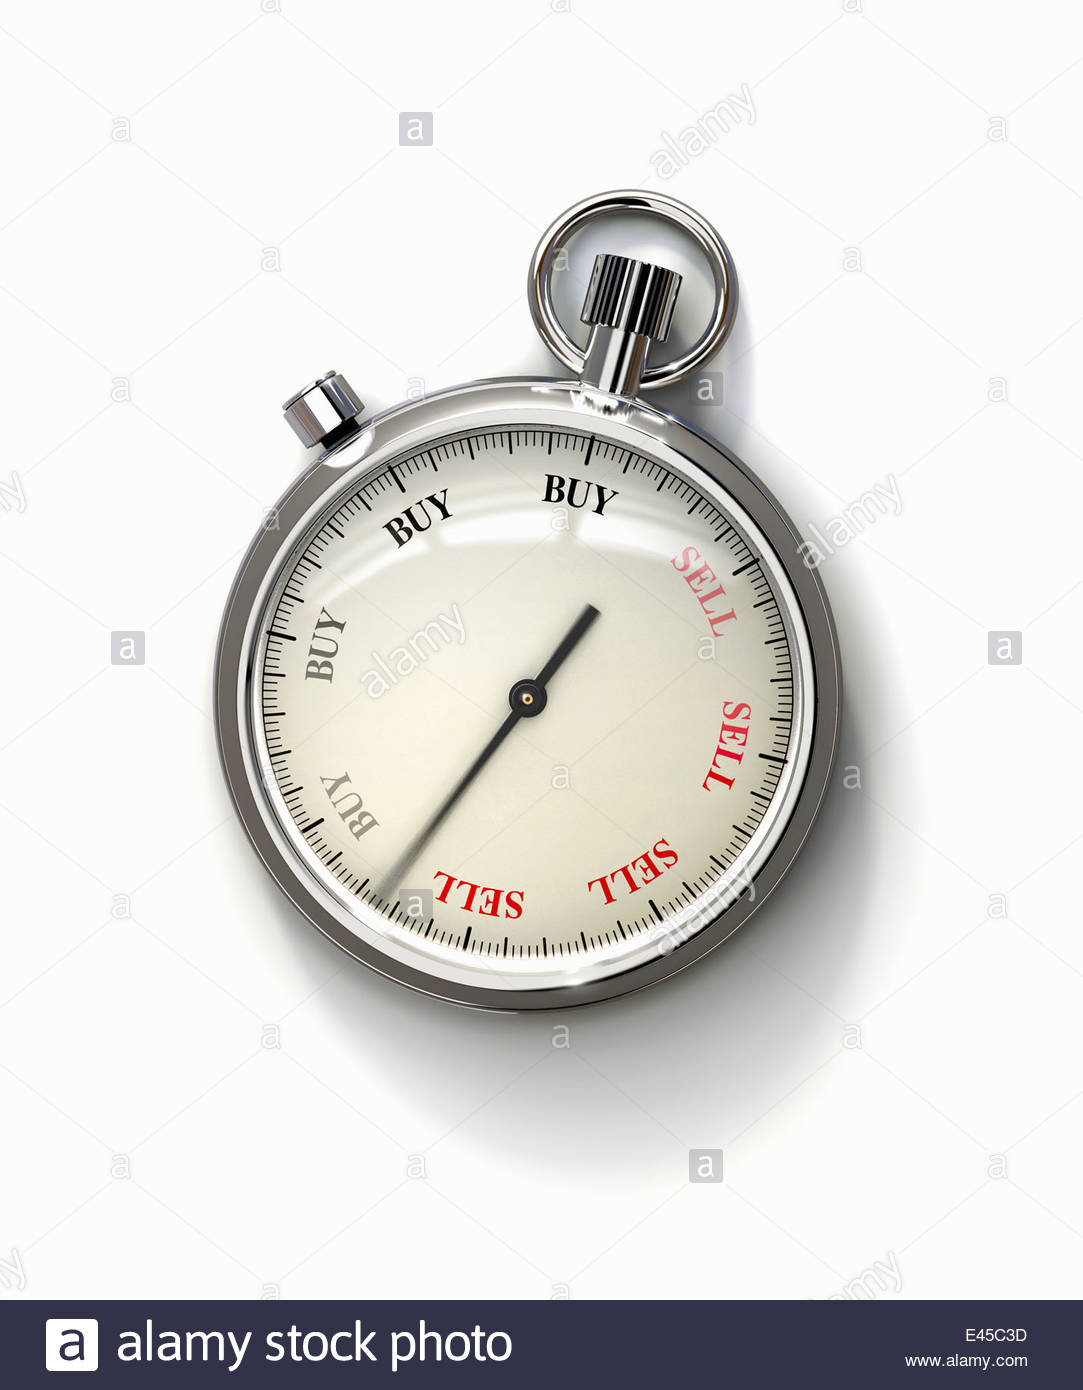 Stopwatch with 'buy' and 'sell' dial - Stock Image